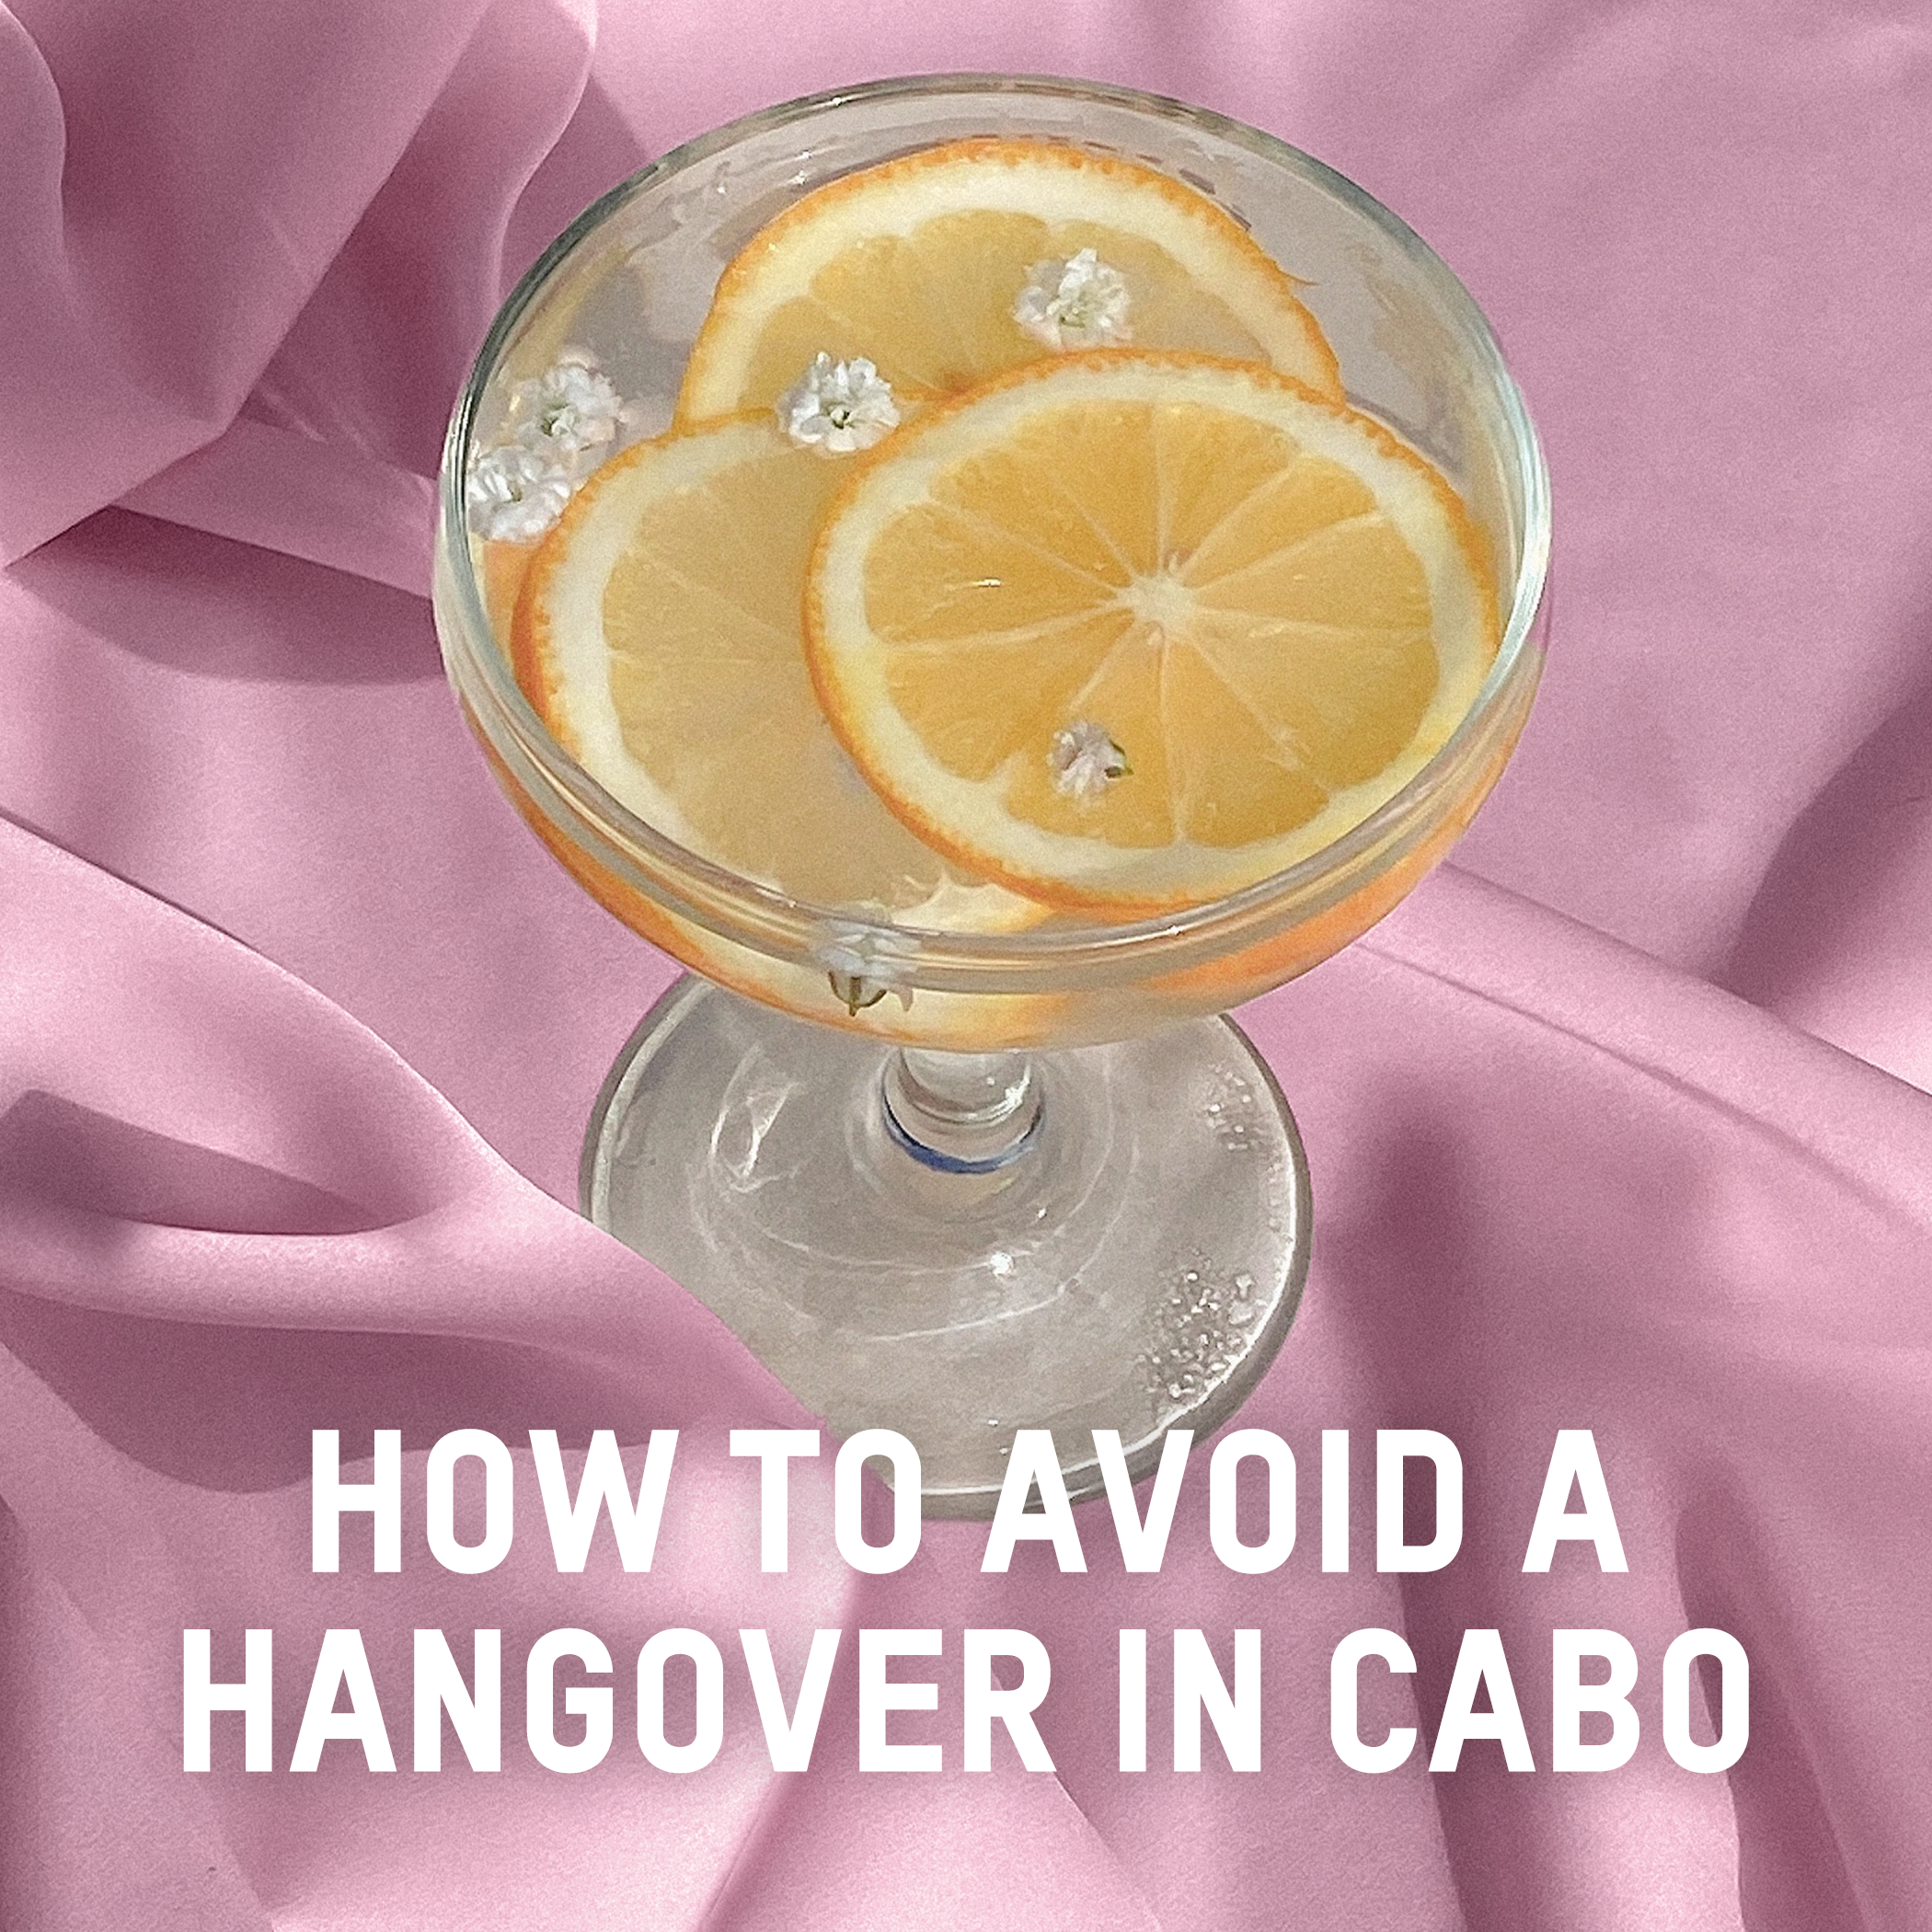 How To Avoid a Hangover In Cabo